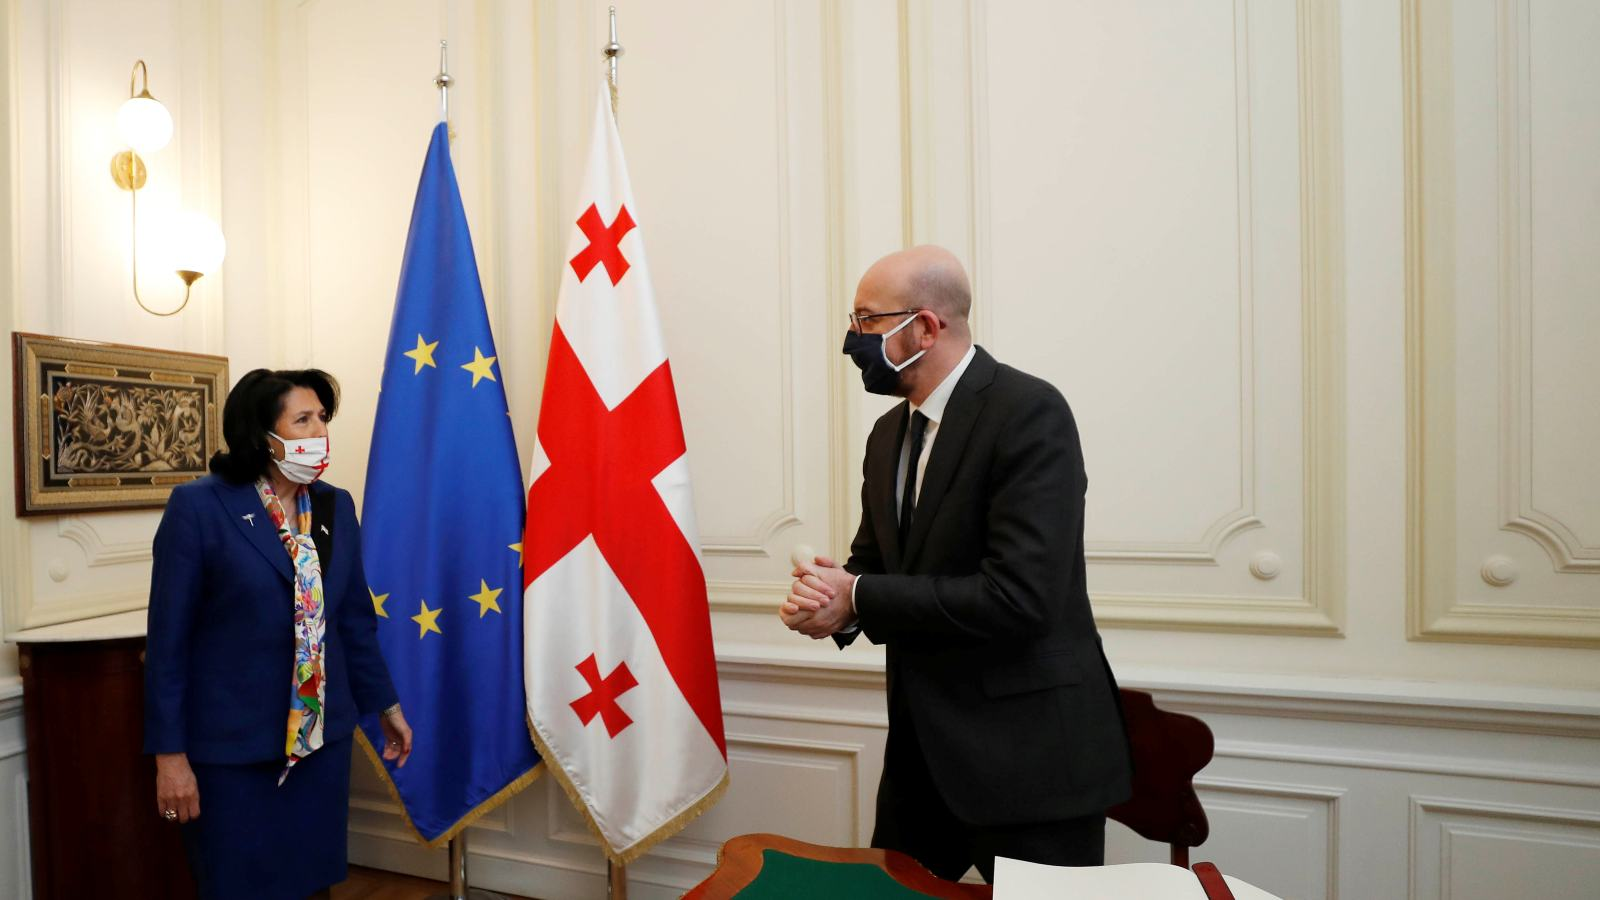 Georgia's President Salome Zurabishvili attends a meeting with European Council President Charles Michel in Tbilisi, Georgia March 1, 2021. Georgian Presidential Press Service/Handout via REUTERS